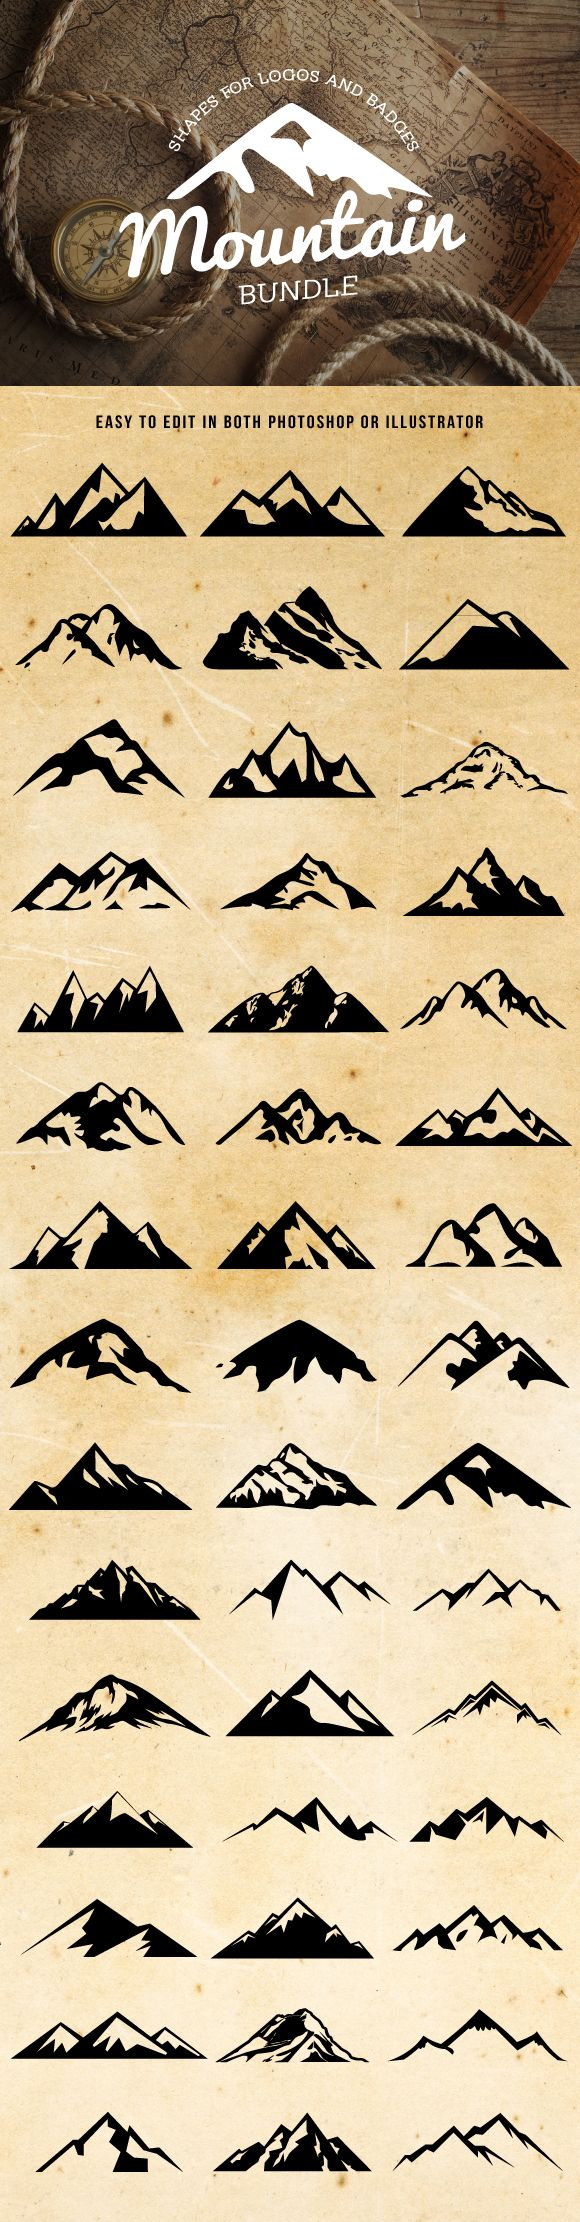 Mountain Shapes For Logos Bundle by lovepower on Creative Market